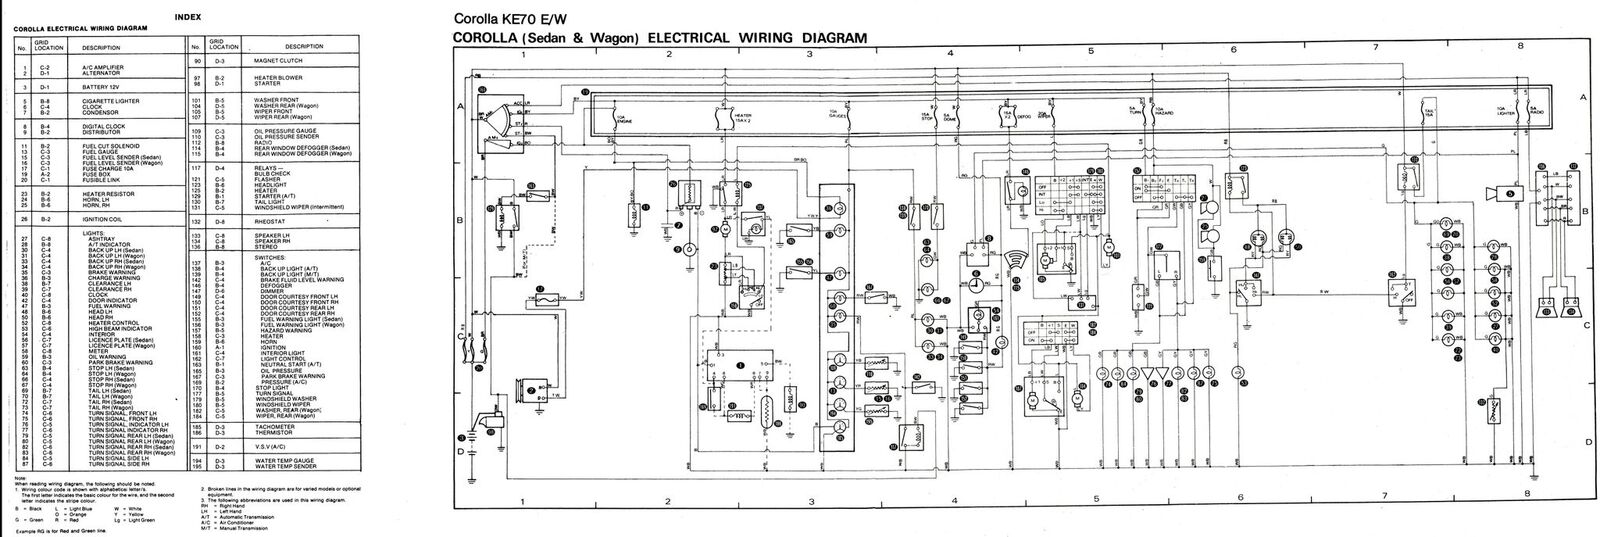 Ke Fuse Box Wiring on fuse box components, fuse box grounding, fuse box plug, fuse box speakers, fuse box electricity, fuse box safety, fuse box assembly, fuse box fuses, fuse box connectors, fuse switch box, fuse box electrical, ignition switch wiring, fuse box repair, fuse box engine, power window switch wiring, fuse box mounts, fuse box relays, fuse box terminals, fuse box dimensions, fuse box transformer,